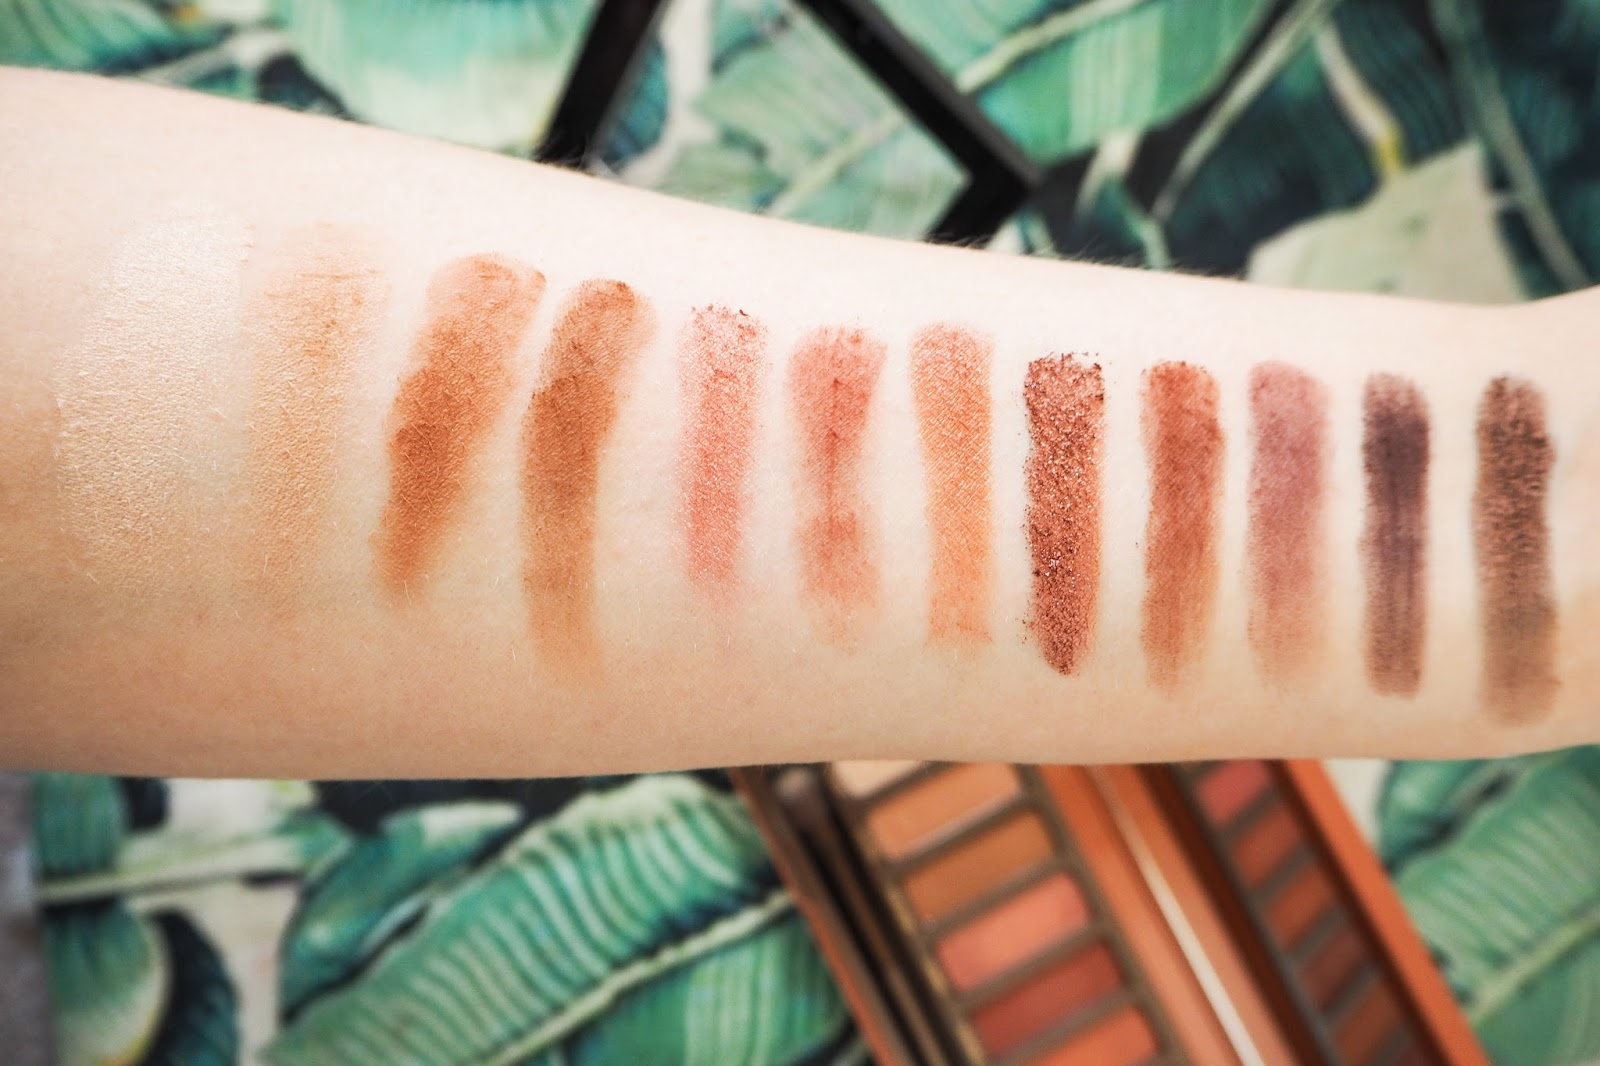 Full swatches pale skin of the eyeshadows in the Urban Decay Naked Heat Palette